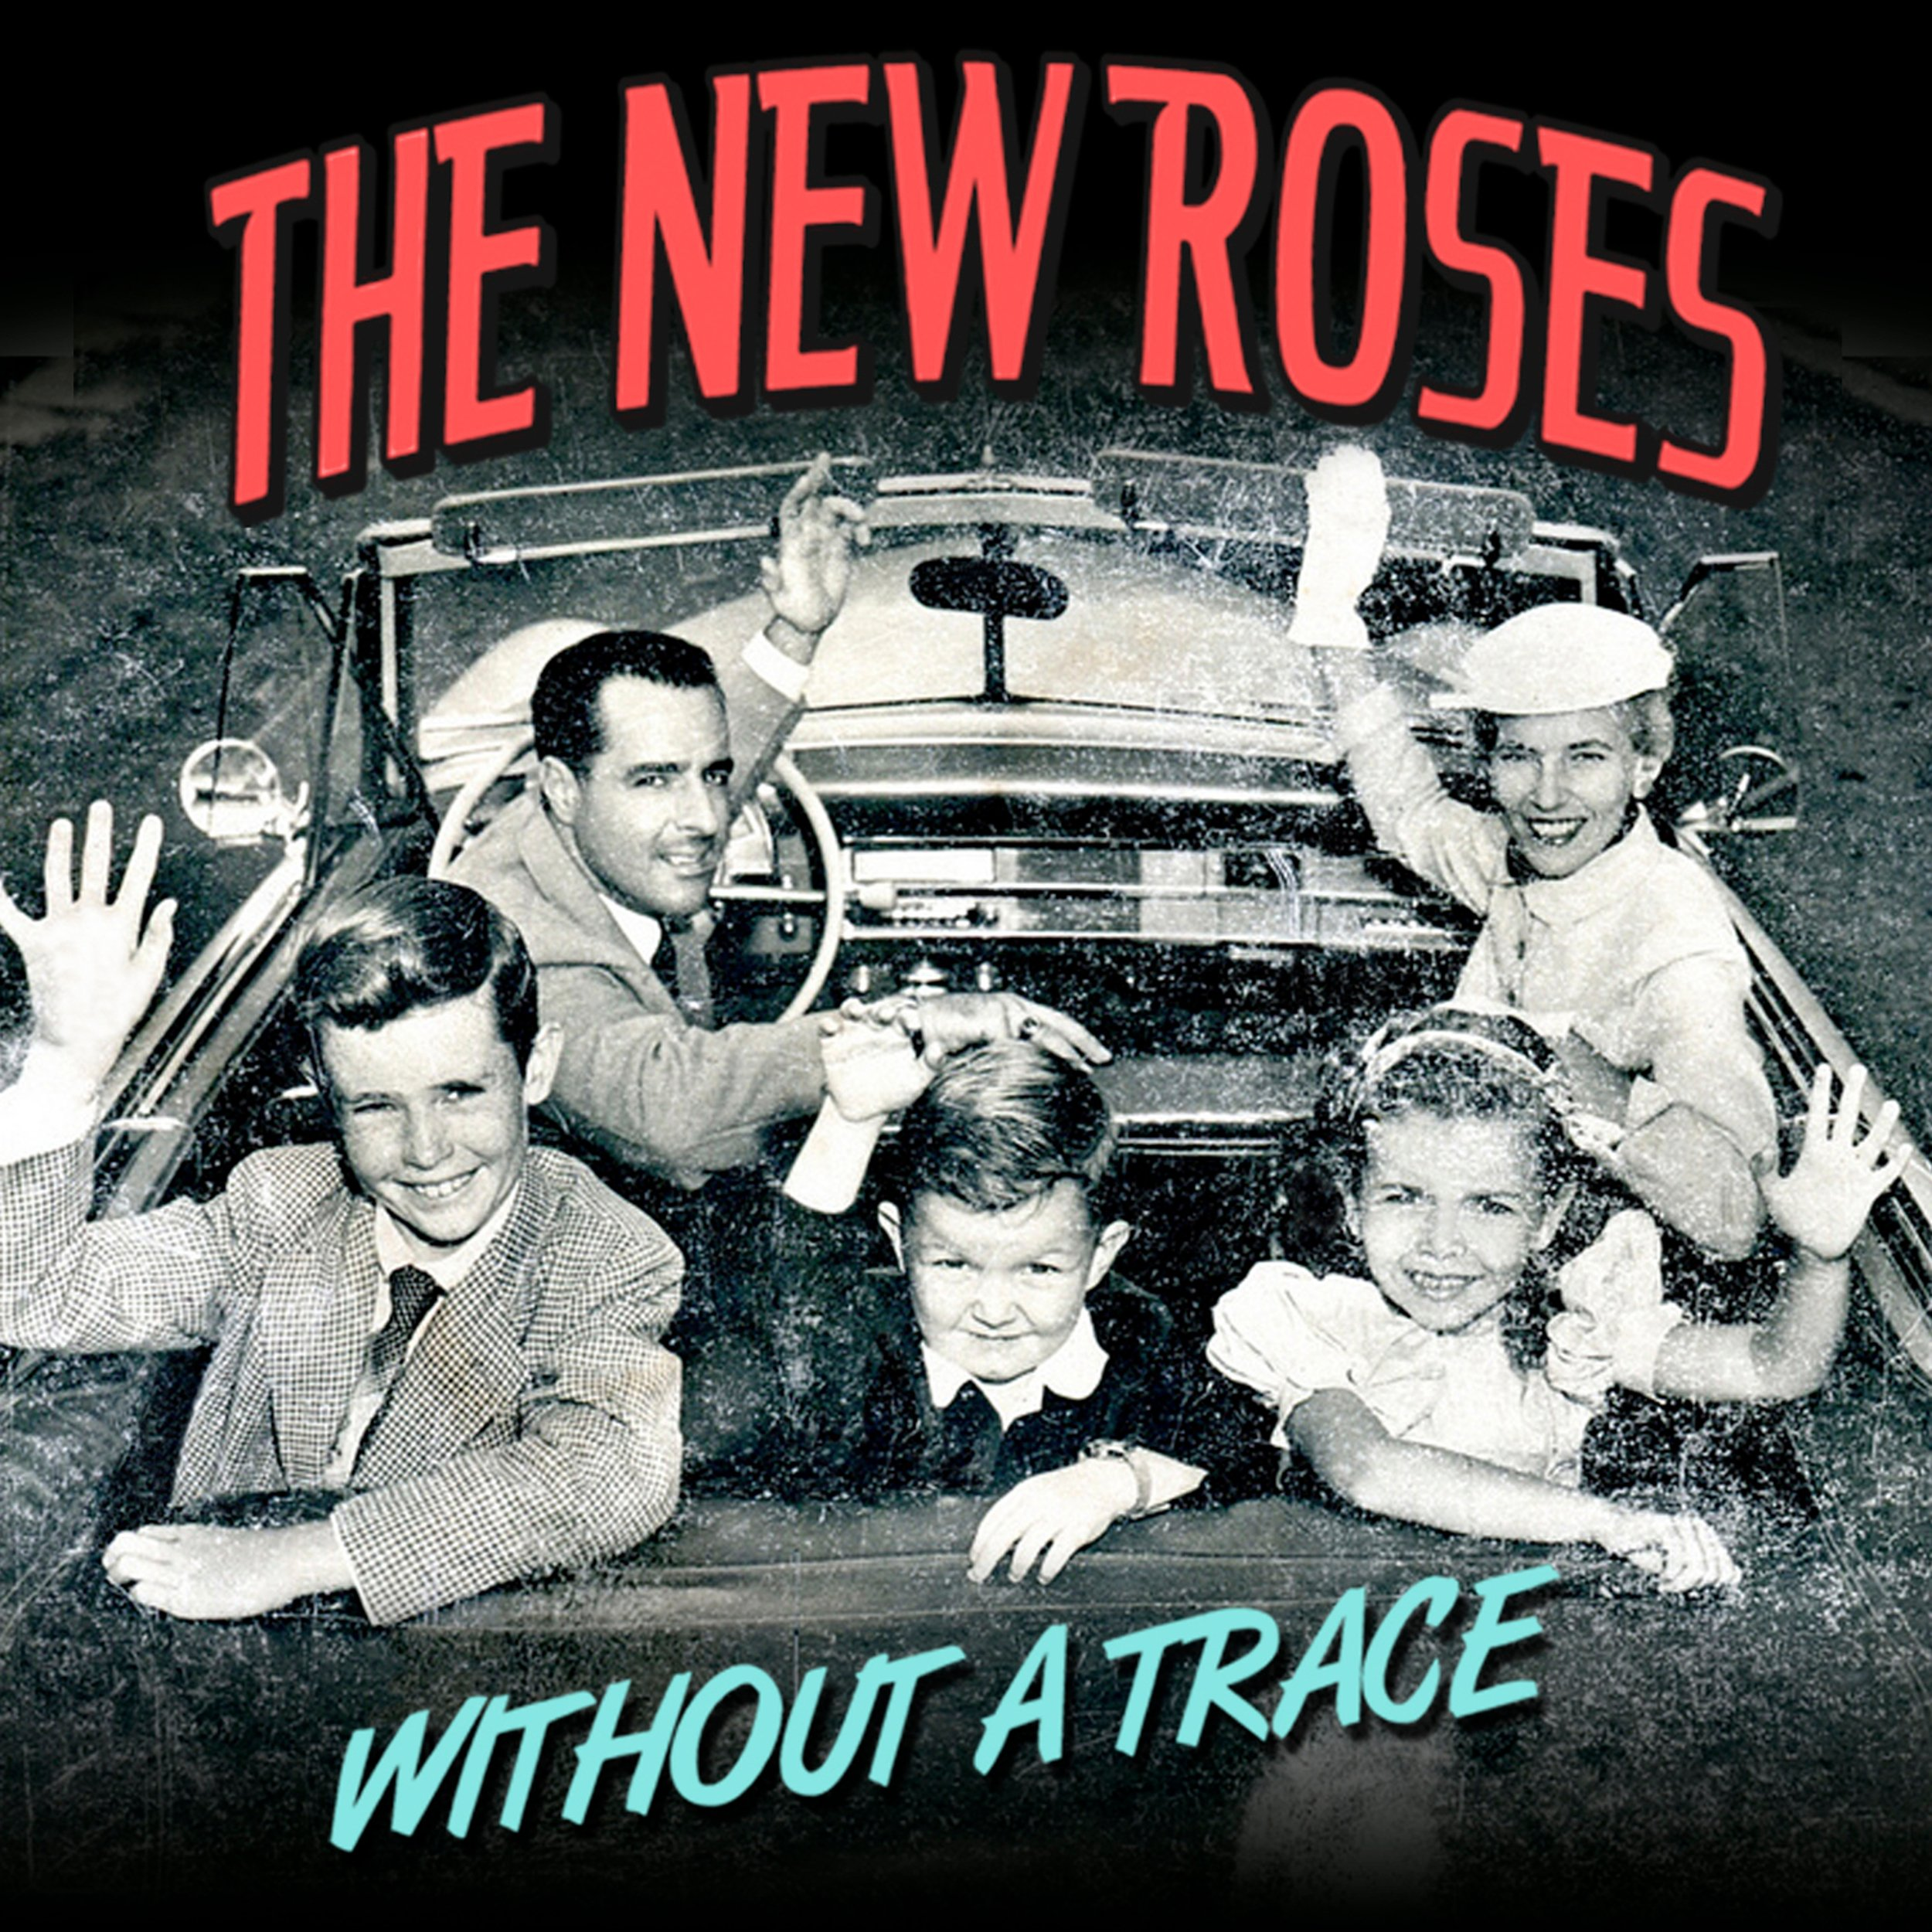 The New Roses - Without a Trace (2013) [FLAC] Download